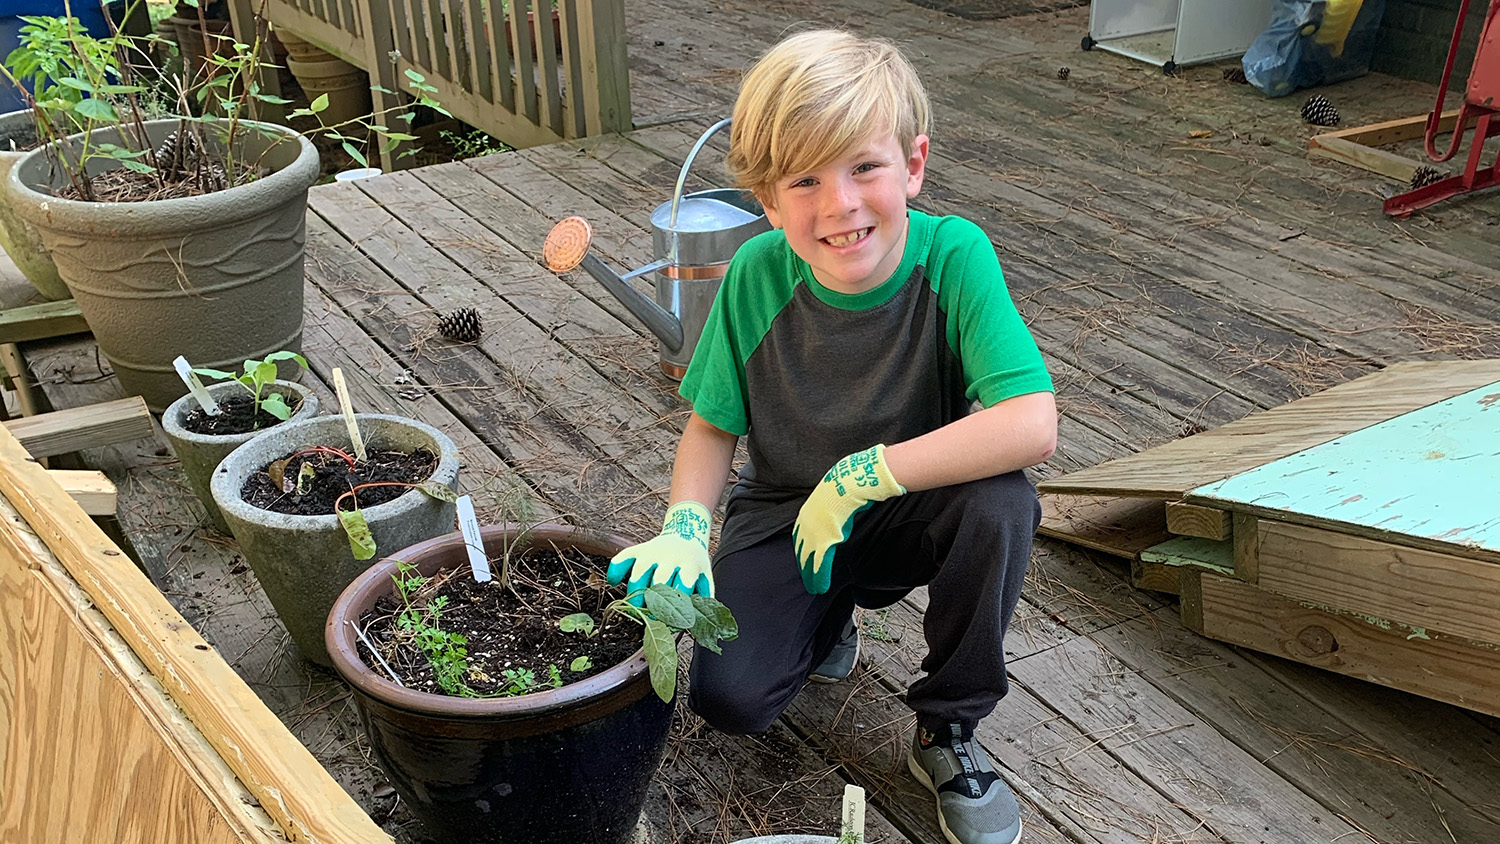 Seven-year-old boy poses with the container garden on his deck